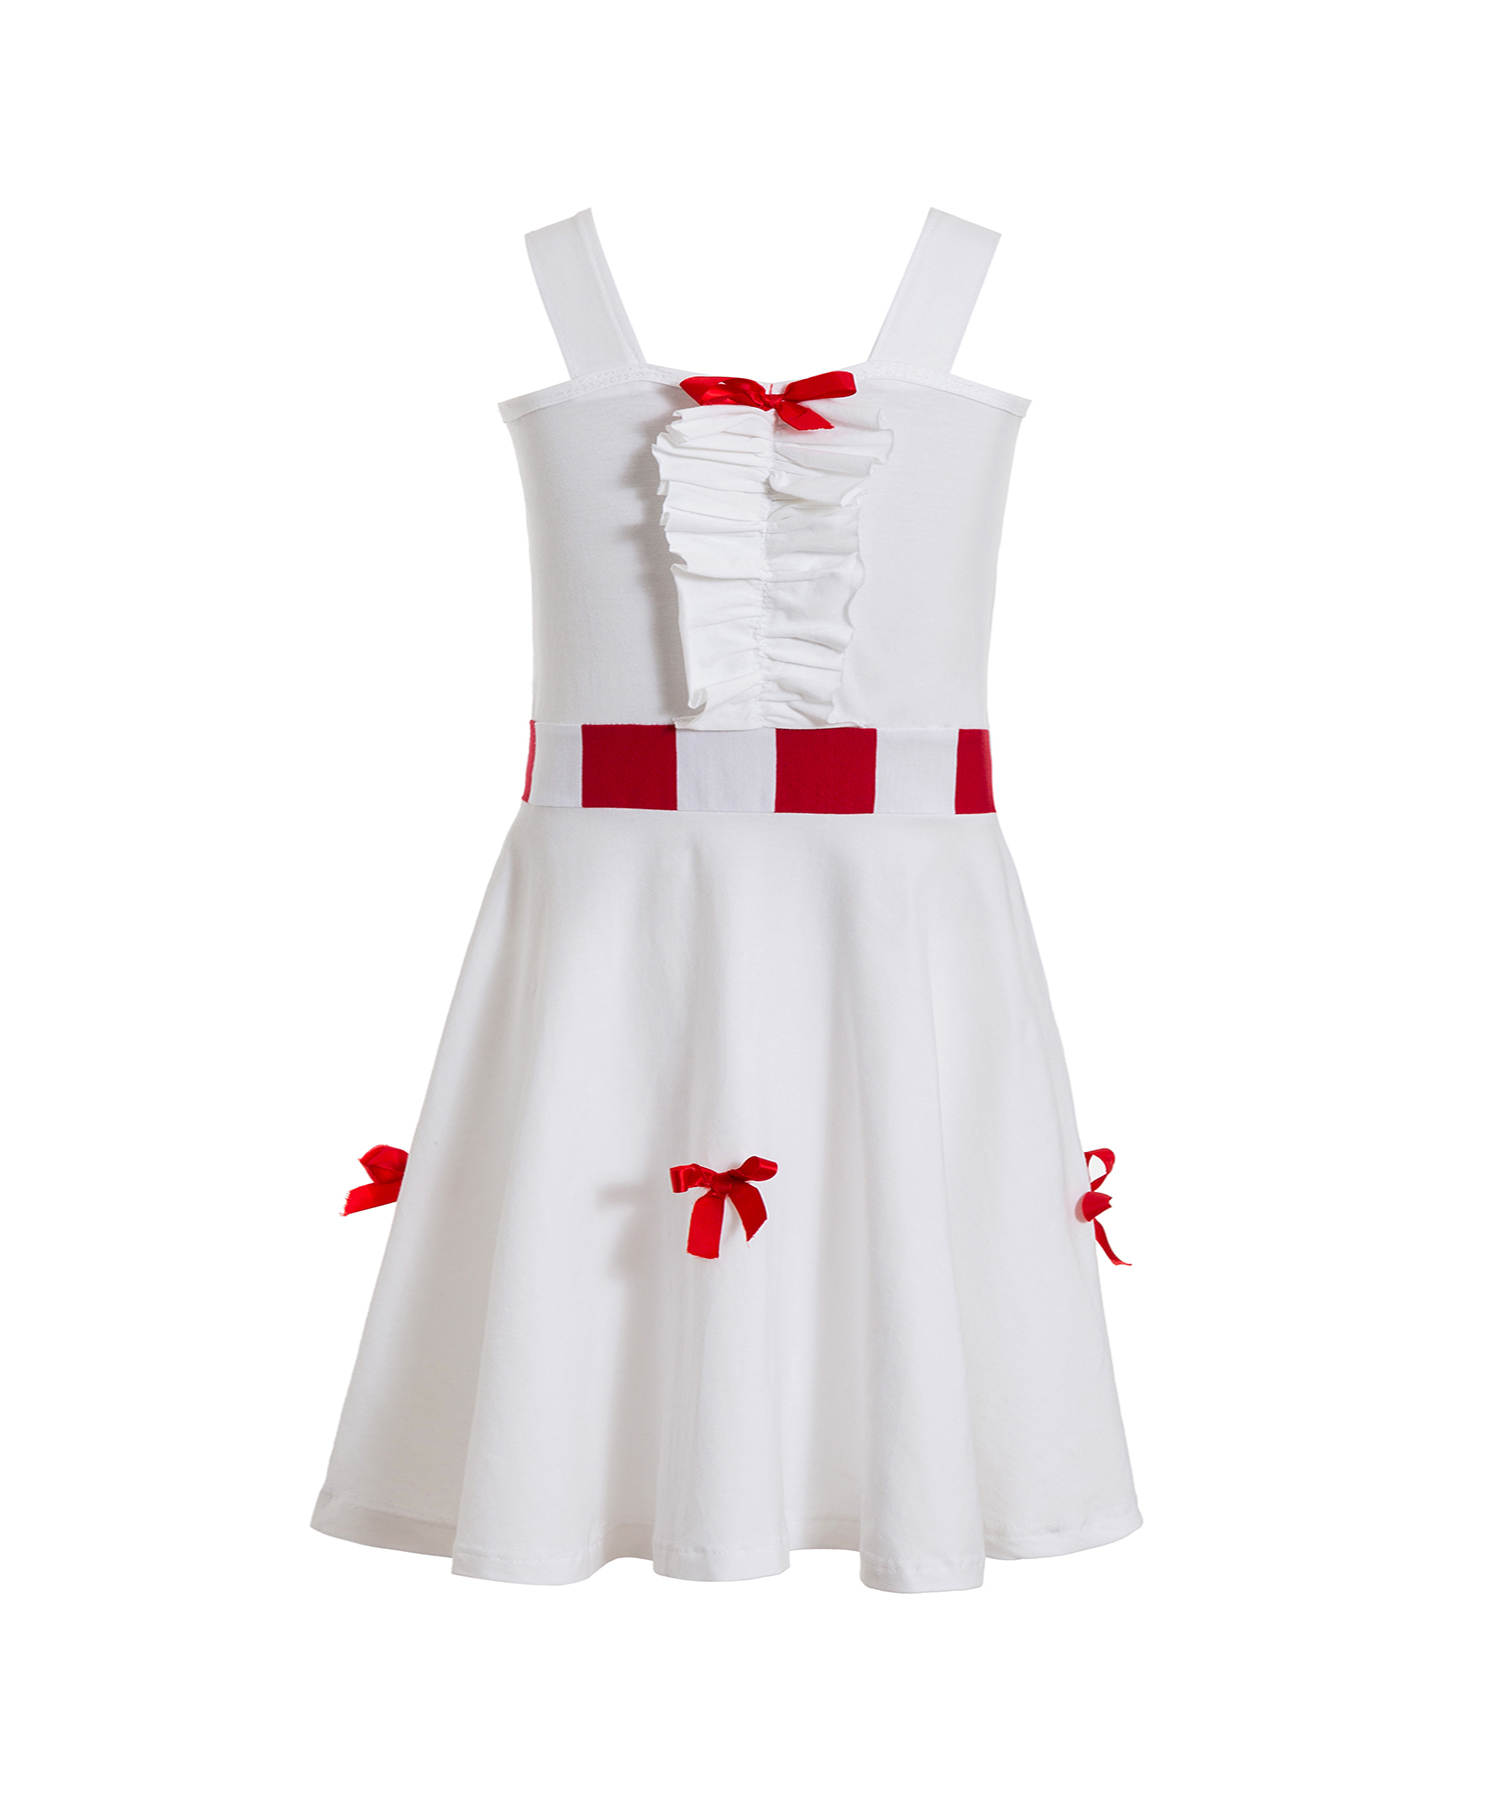 princess <font><b>dress</b></font> <font><b>dress</b></font> eveving party snow white <font><b>dresses</b></font> <font><b>for</b></font> <font><b>girls</b></font> of <font><b>15</b></font> <font><b>years</b></font> <font><b>old</b></font> first communion <font><b>dress</b></font> Mary Poppins image